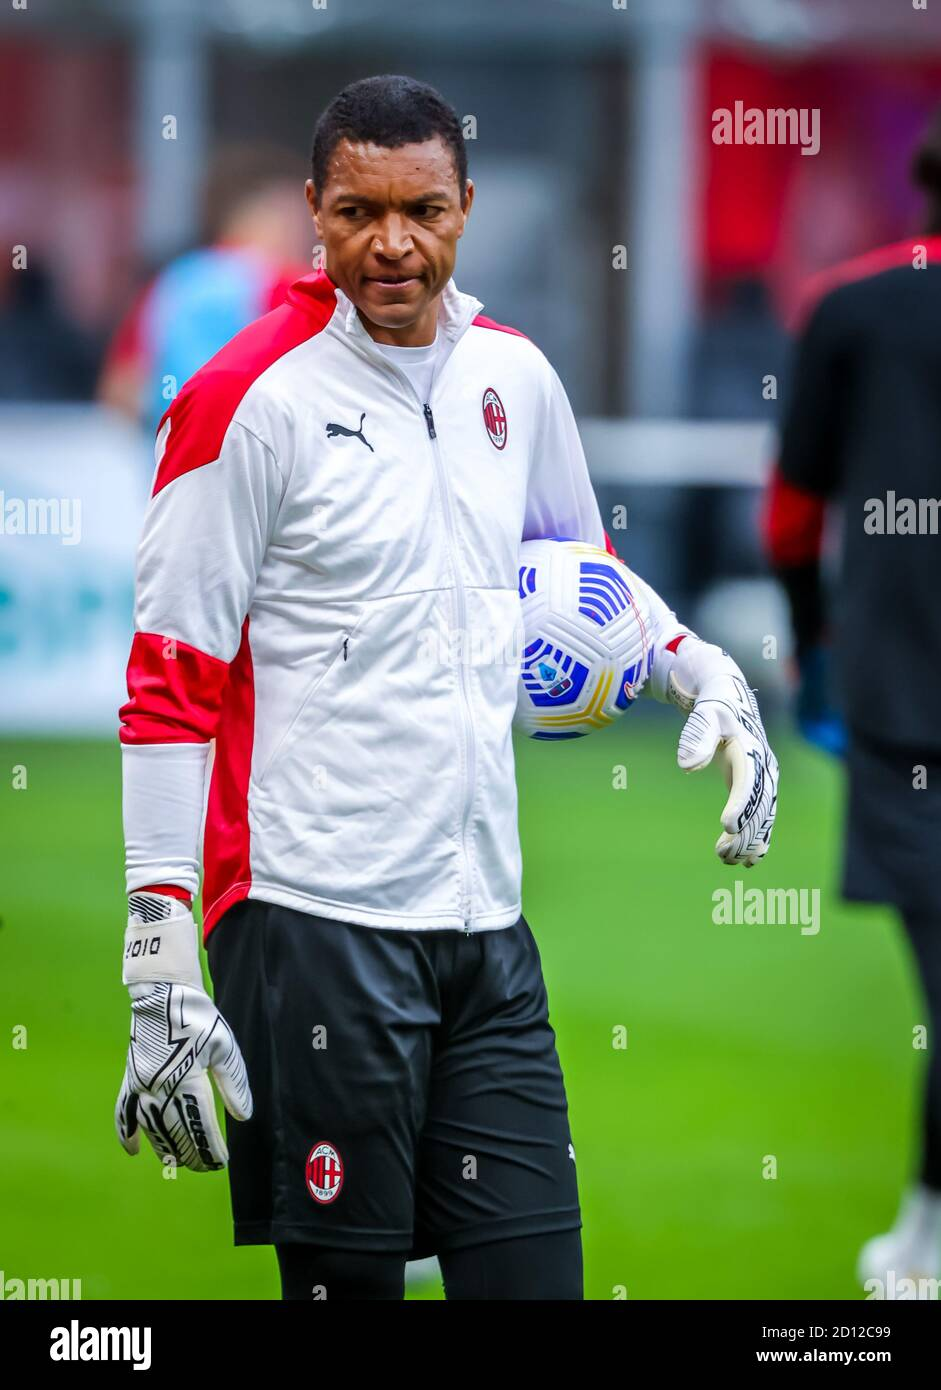 Nelson Dida Of Ac Milan During The Serie A 2020 21 Match Between Ac Milan Vs